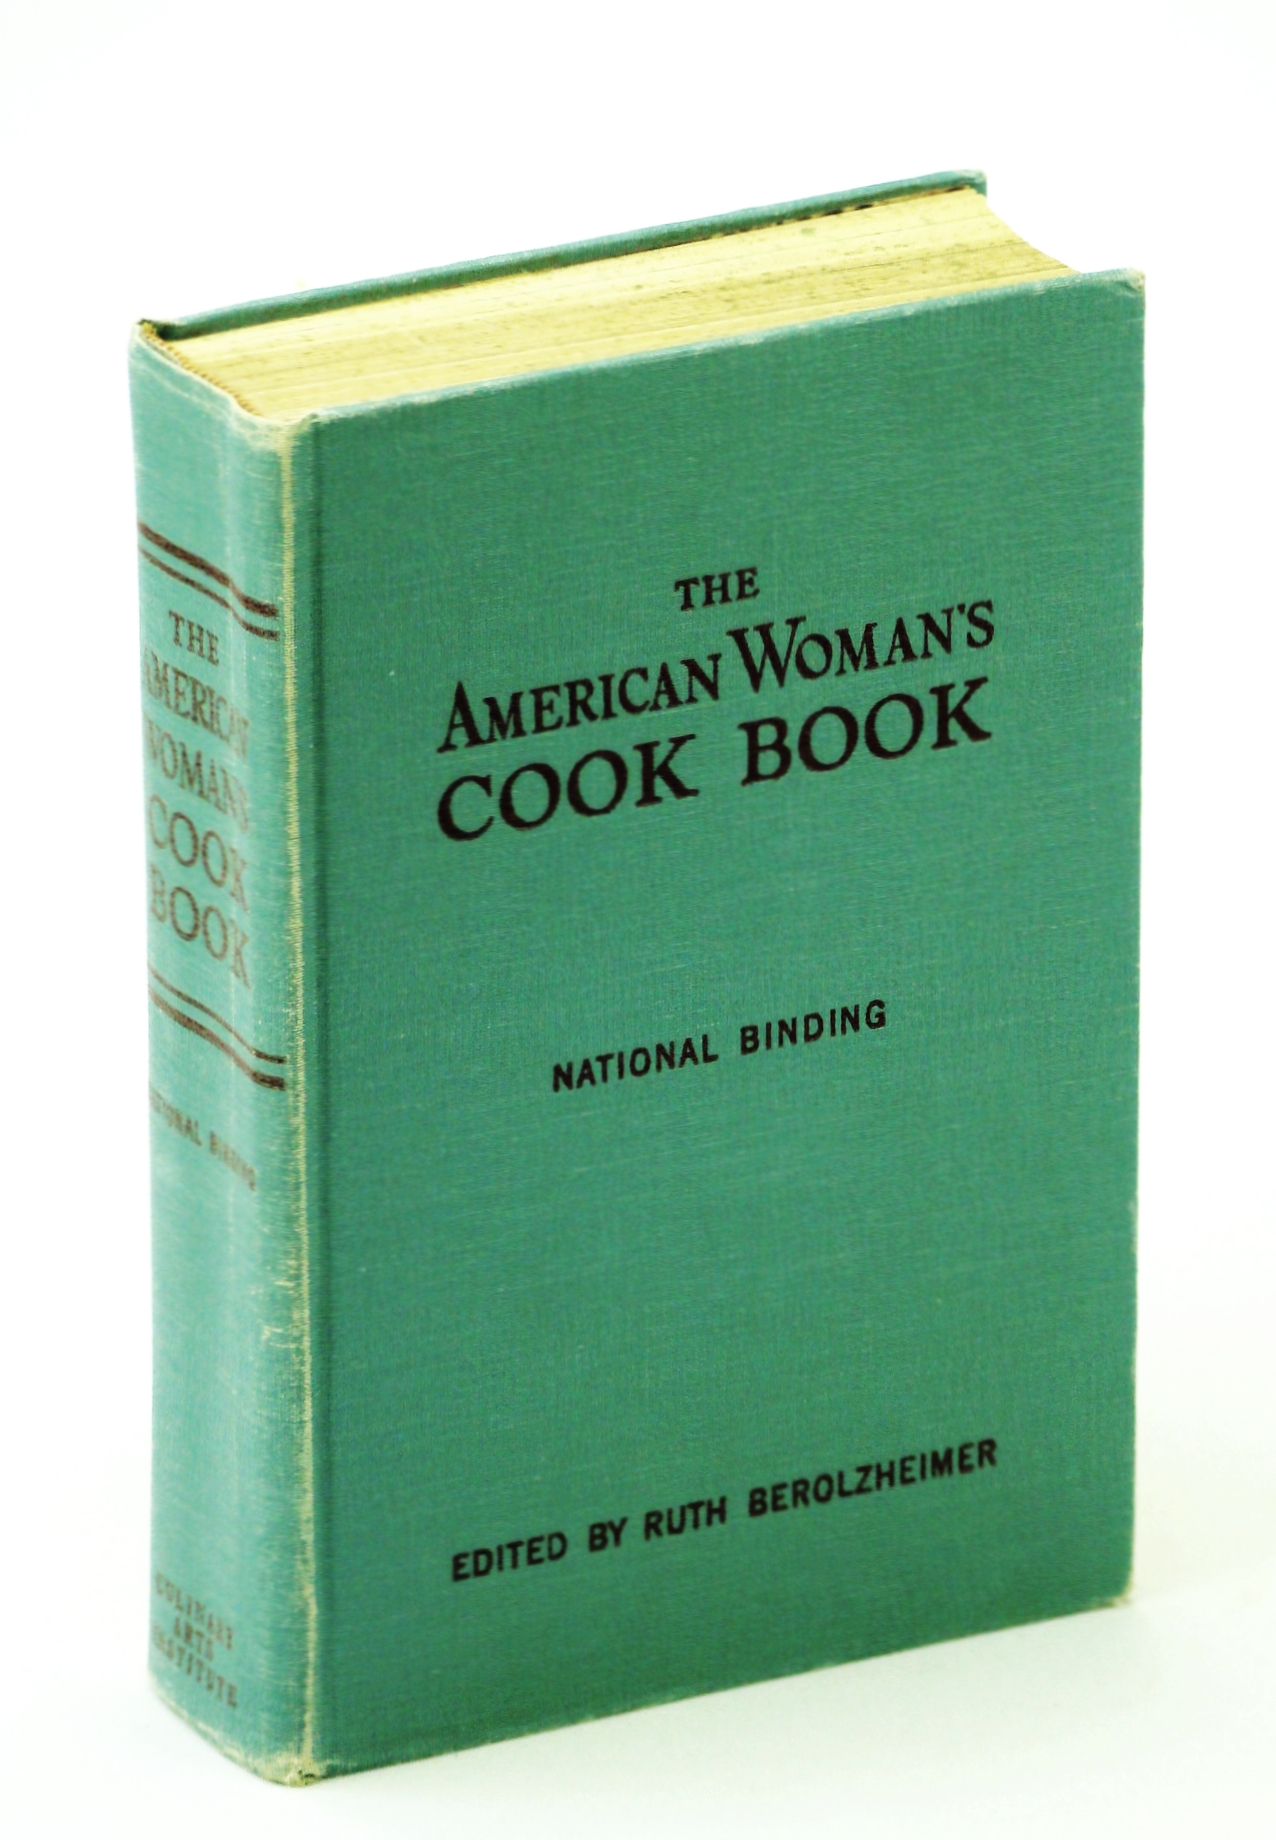 Image for THE AMERICAN WOMAN'S COOK BOOK (National Binding)